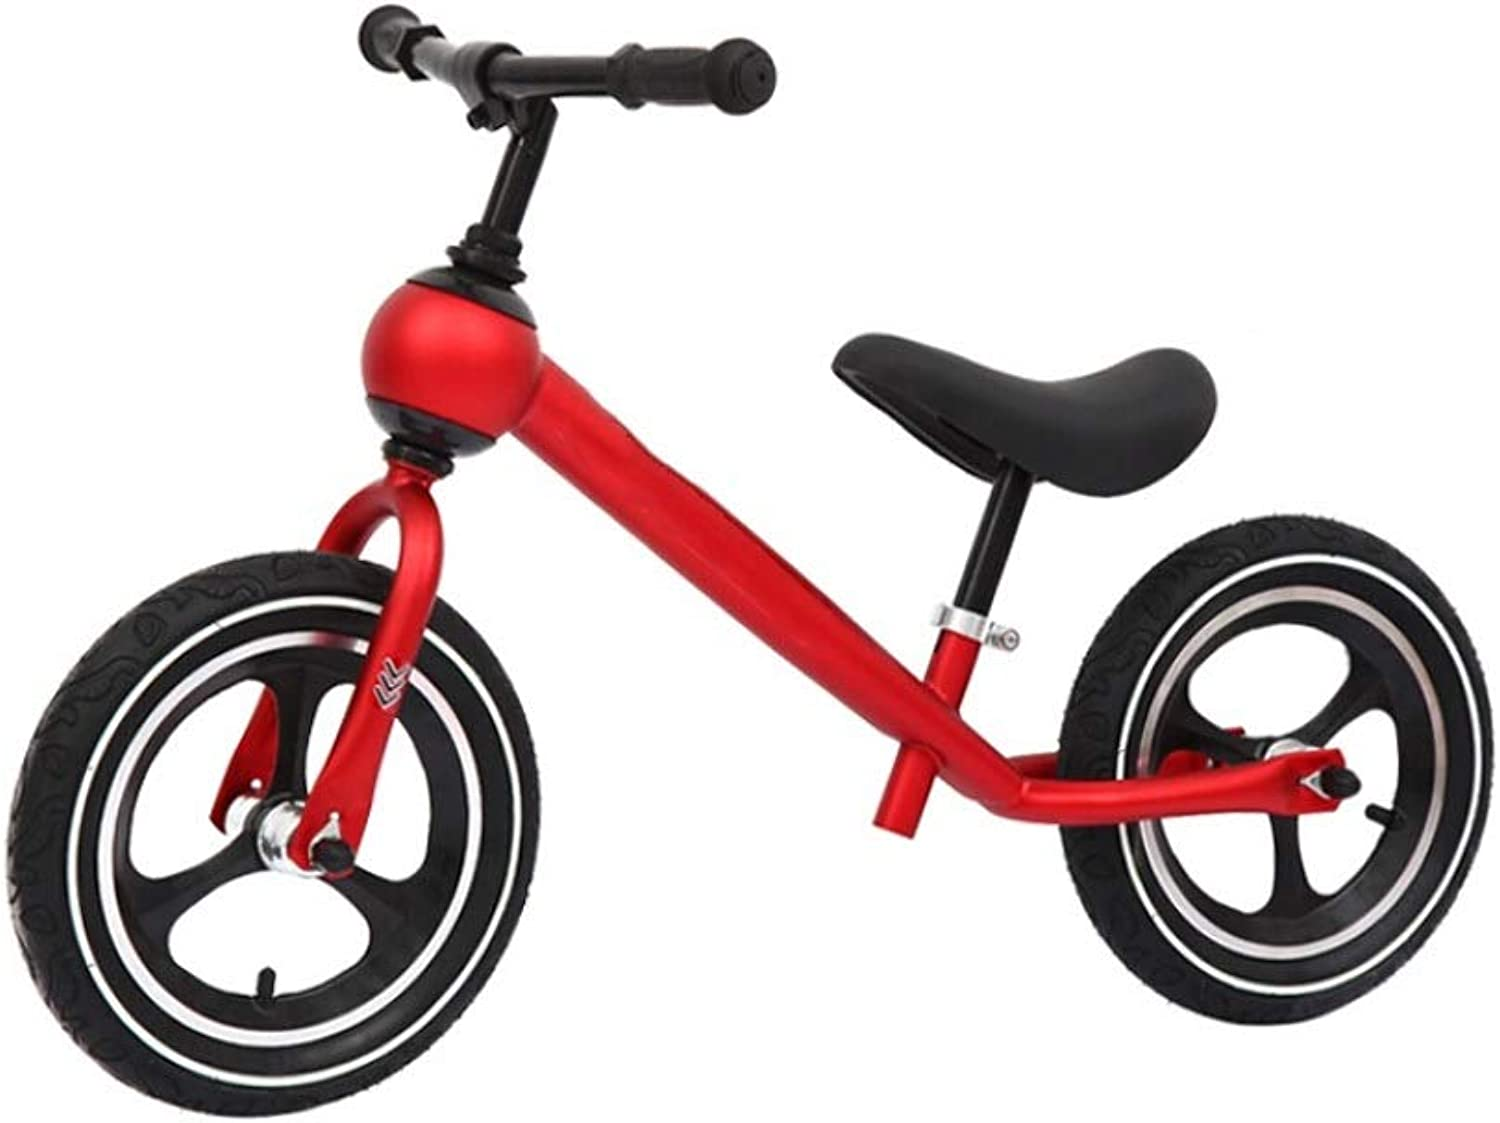 Chenglian Kids' Balance Bikes Balance Bike, No Pedals Balance Bike, Lightweight Adjustable Handlebar And SeatWalking Bicycle, For Kids Ages 2 3 4 5 6 Years Old (color   Red)